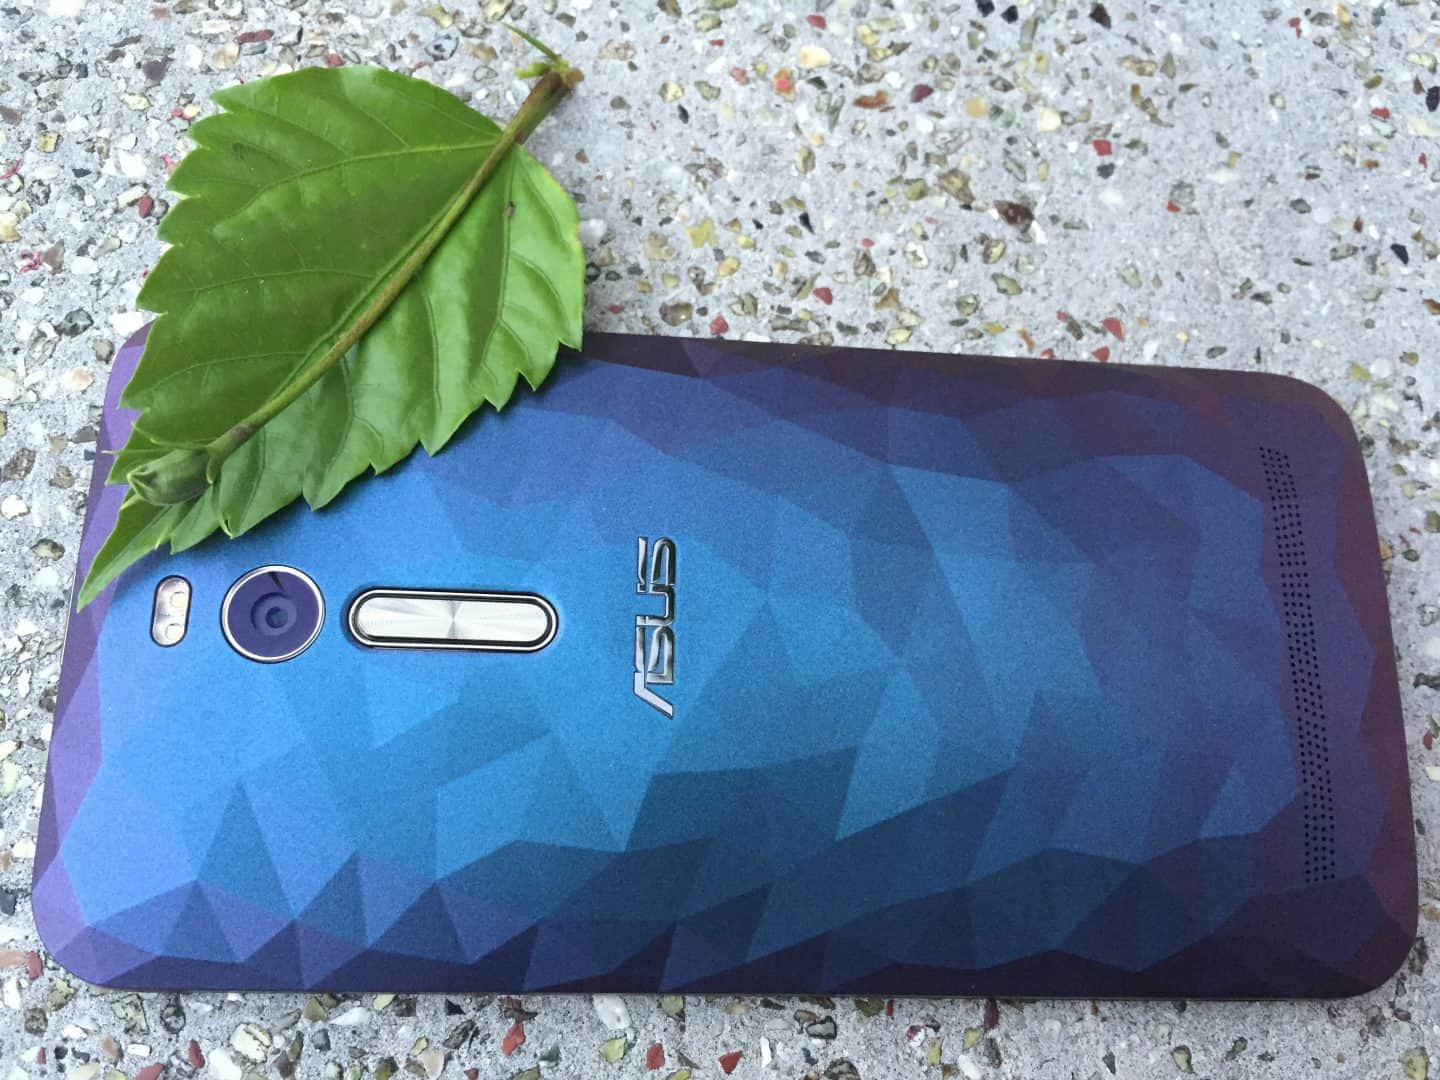 Asus ZenFone 2 Deluxe Review: The current best Intel based High-end Smartphone - 6